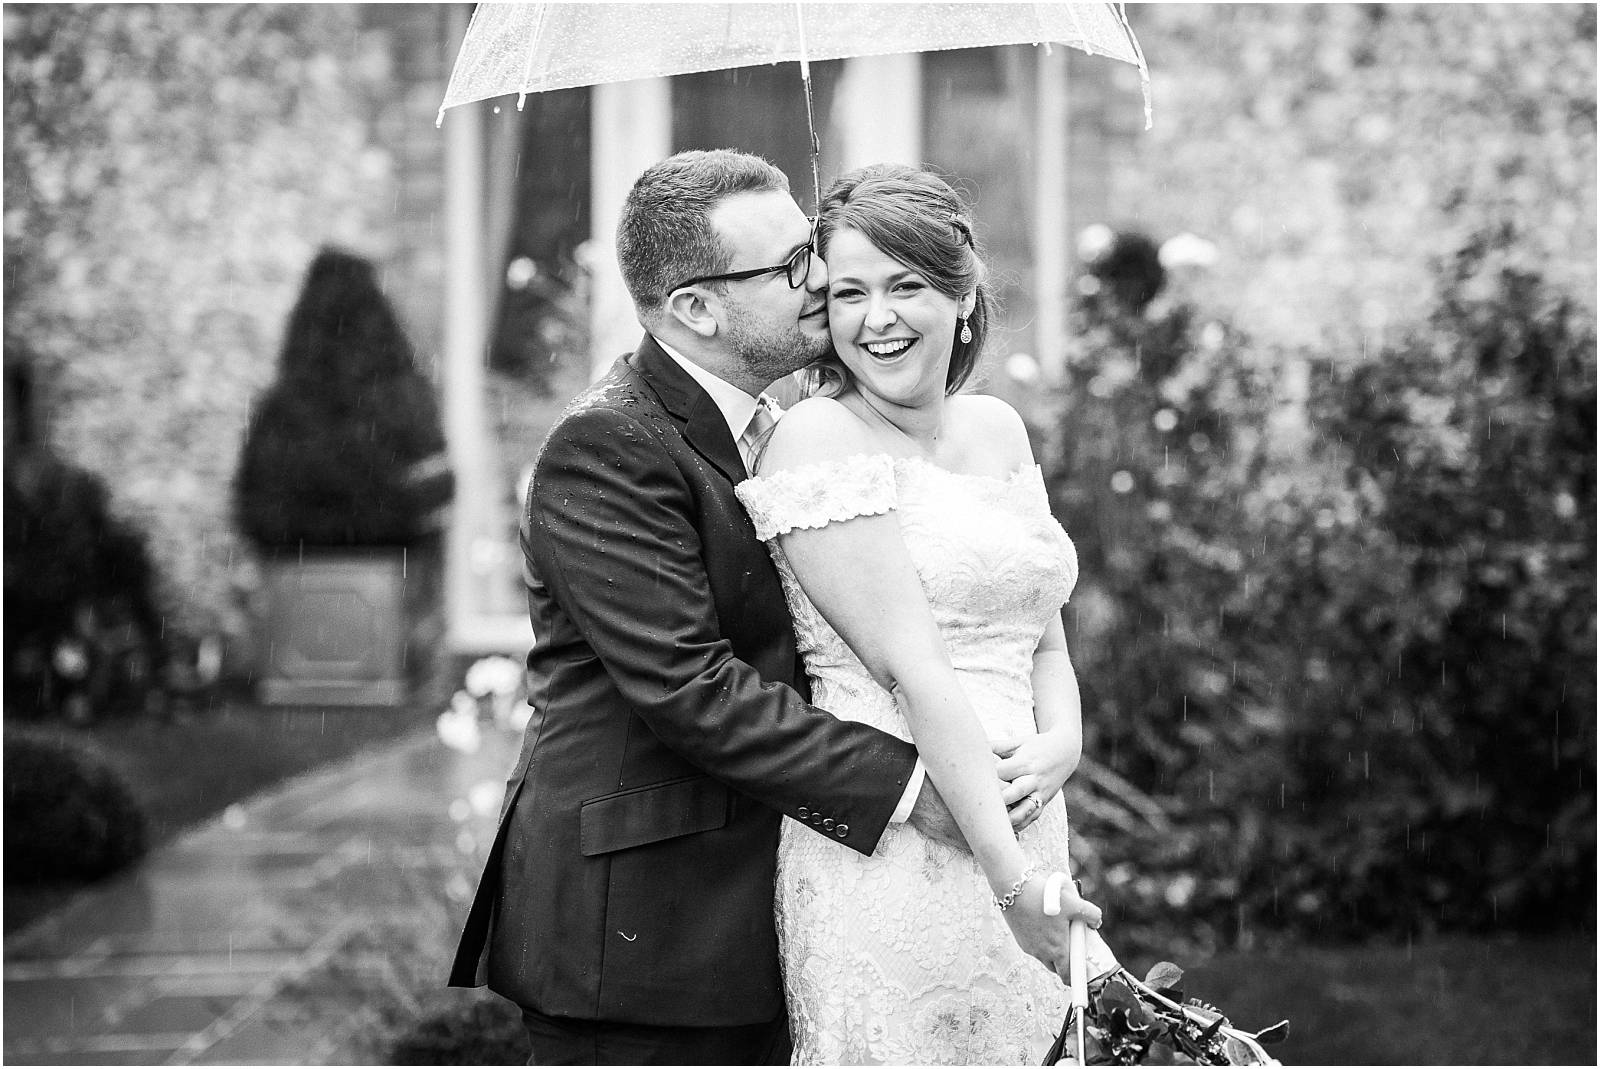 Farbridge Wedding Photography – Sophie & Henry's autumn wedding